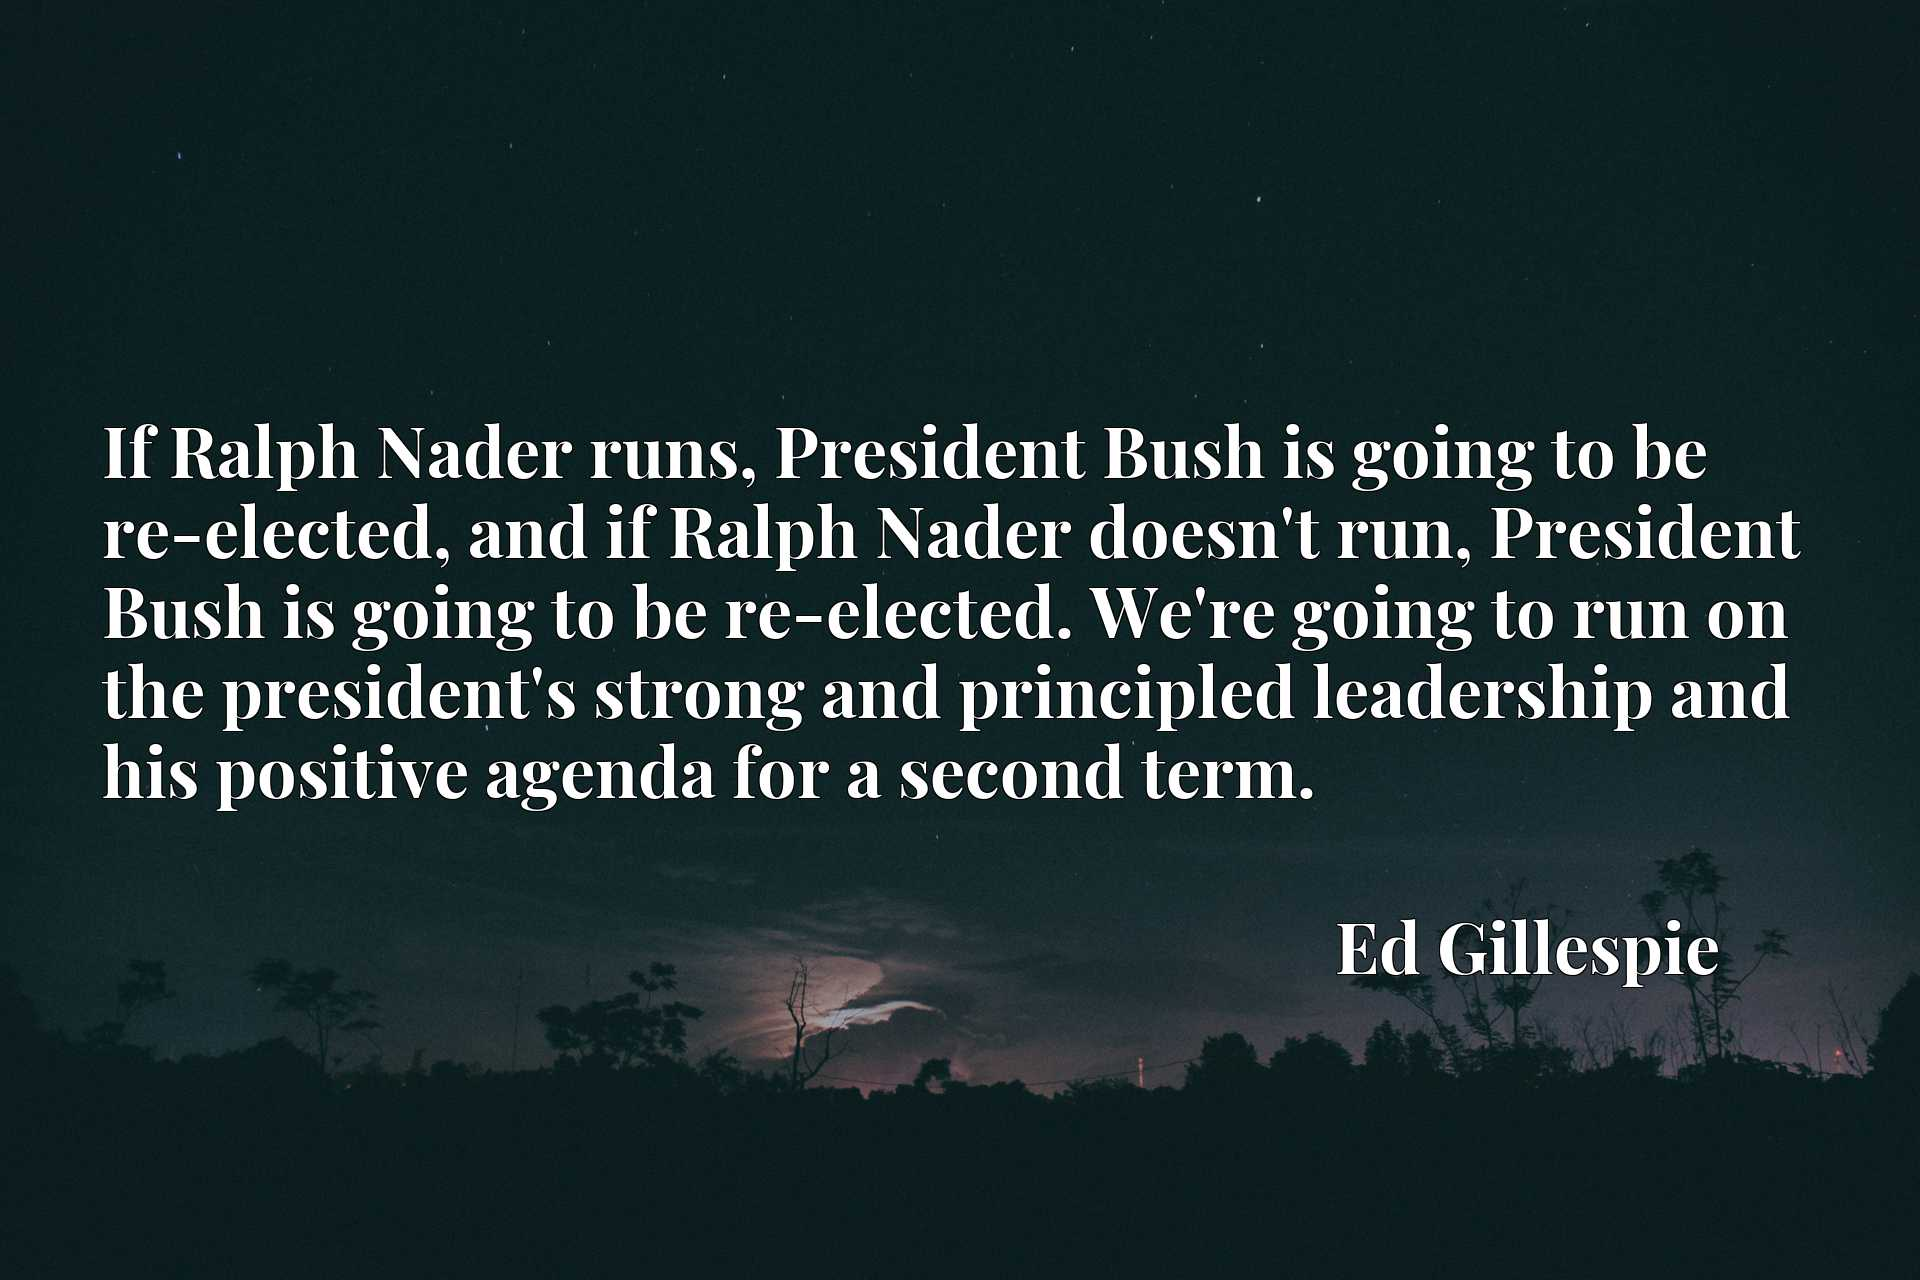 If Ralph Nader runs, President Bush is going to be re-elected, and if Ralph Nader doesn't run, President Bush is going to be re-elected. We're going to run on the president's strong and principled leadership and his positive agenda for a second term.